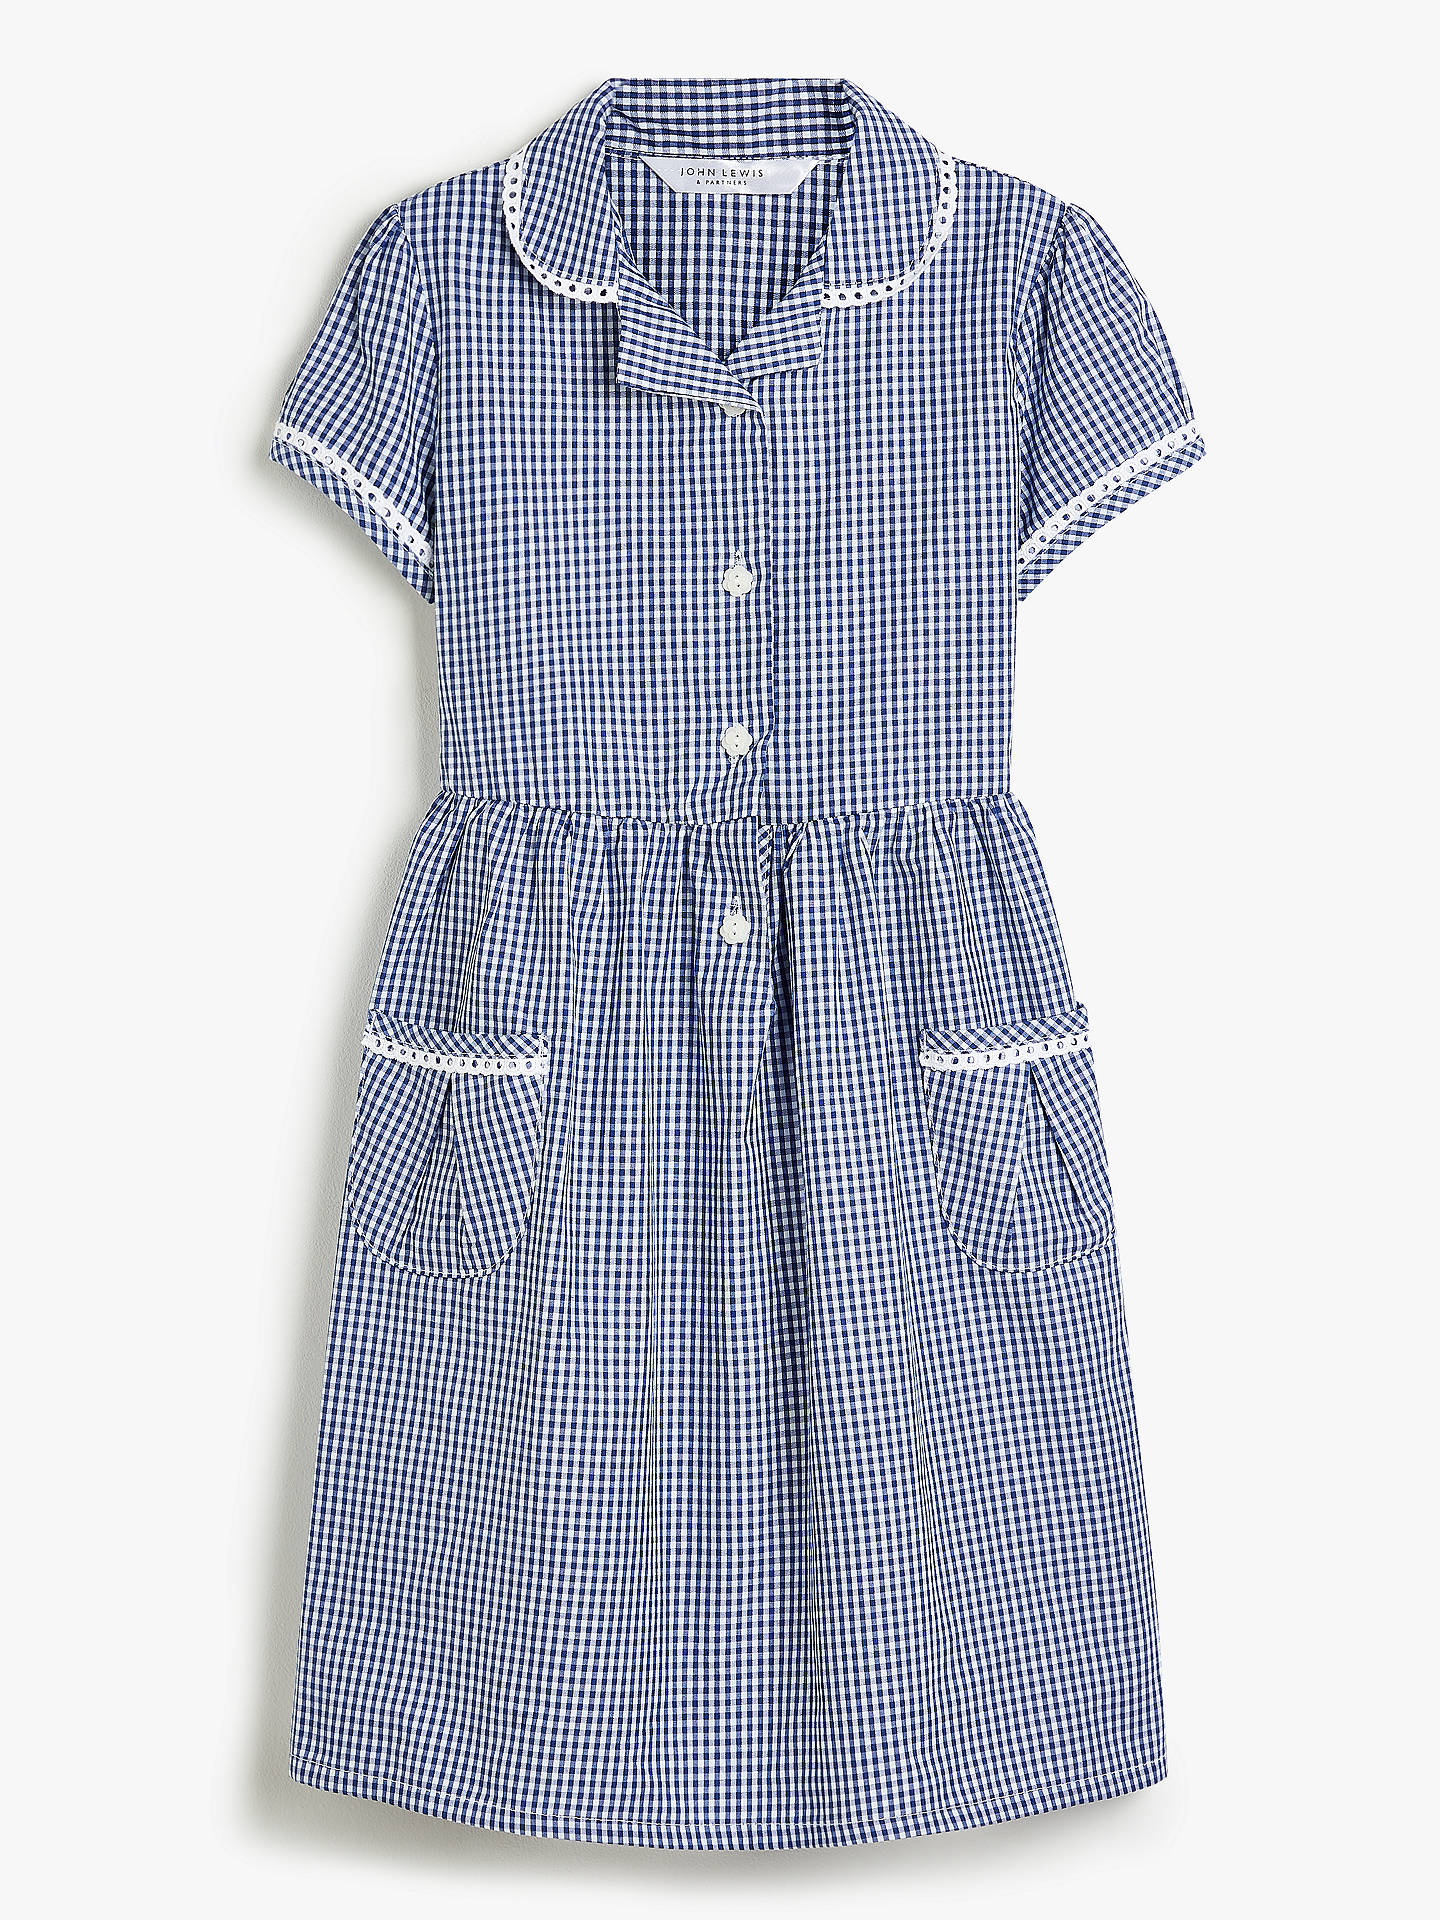 Buy John Lewis & Partners Gingham Cotton School Summer Dress, Navy, 4 years Online at johnlewis.com